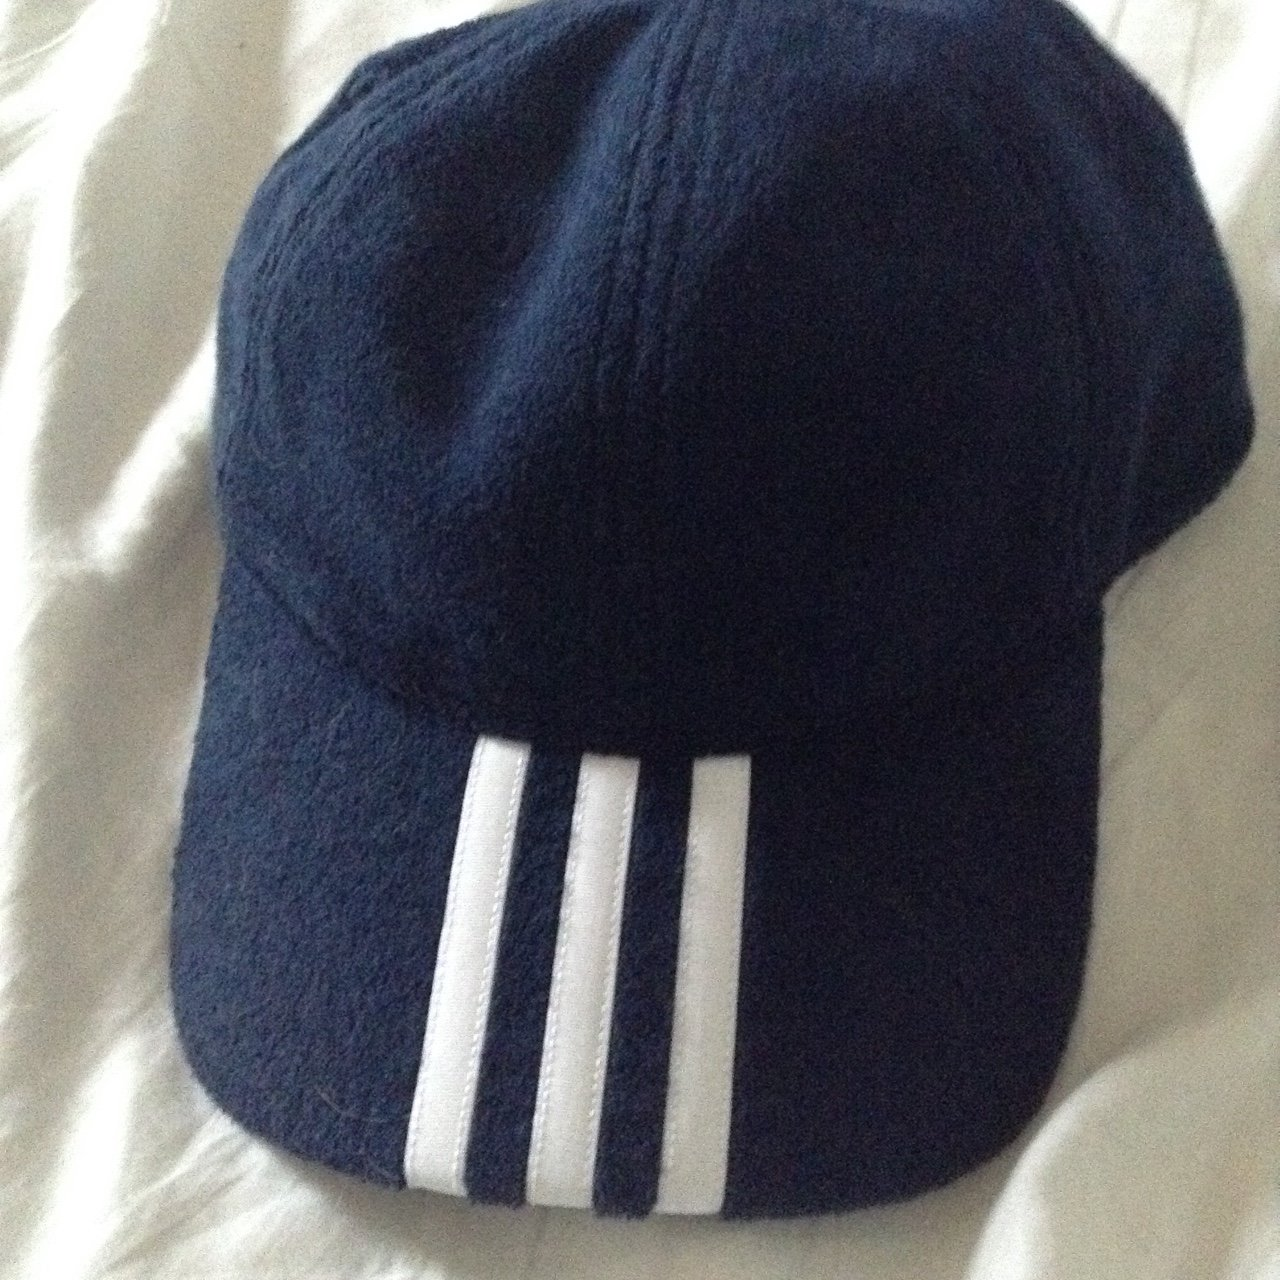 911a0350bad New palace X Adidas towel hat brand new from drop worn once - Depop